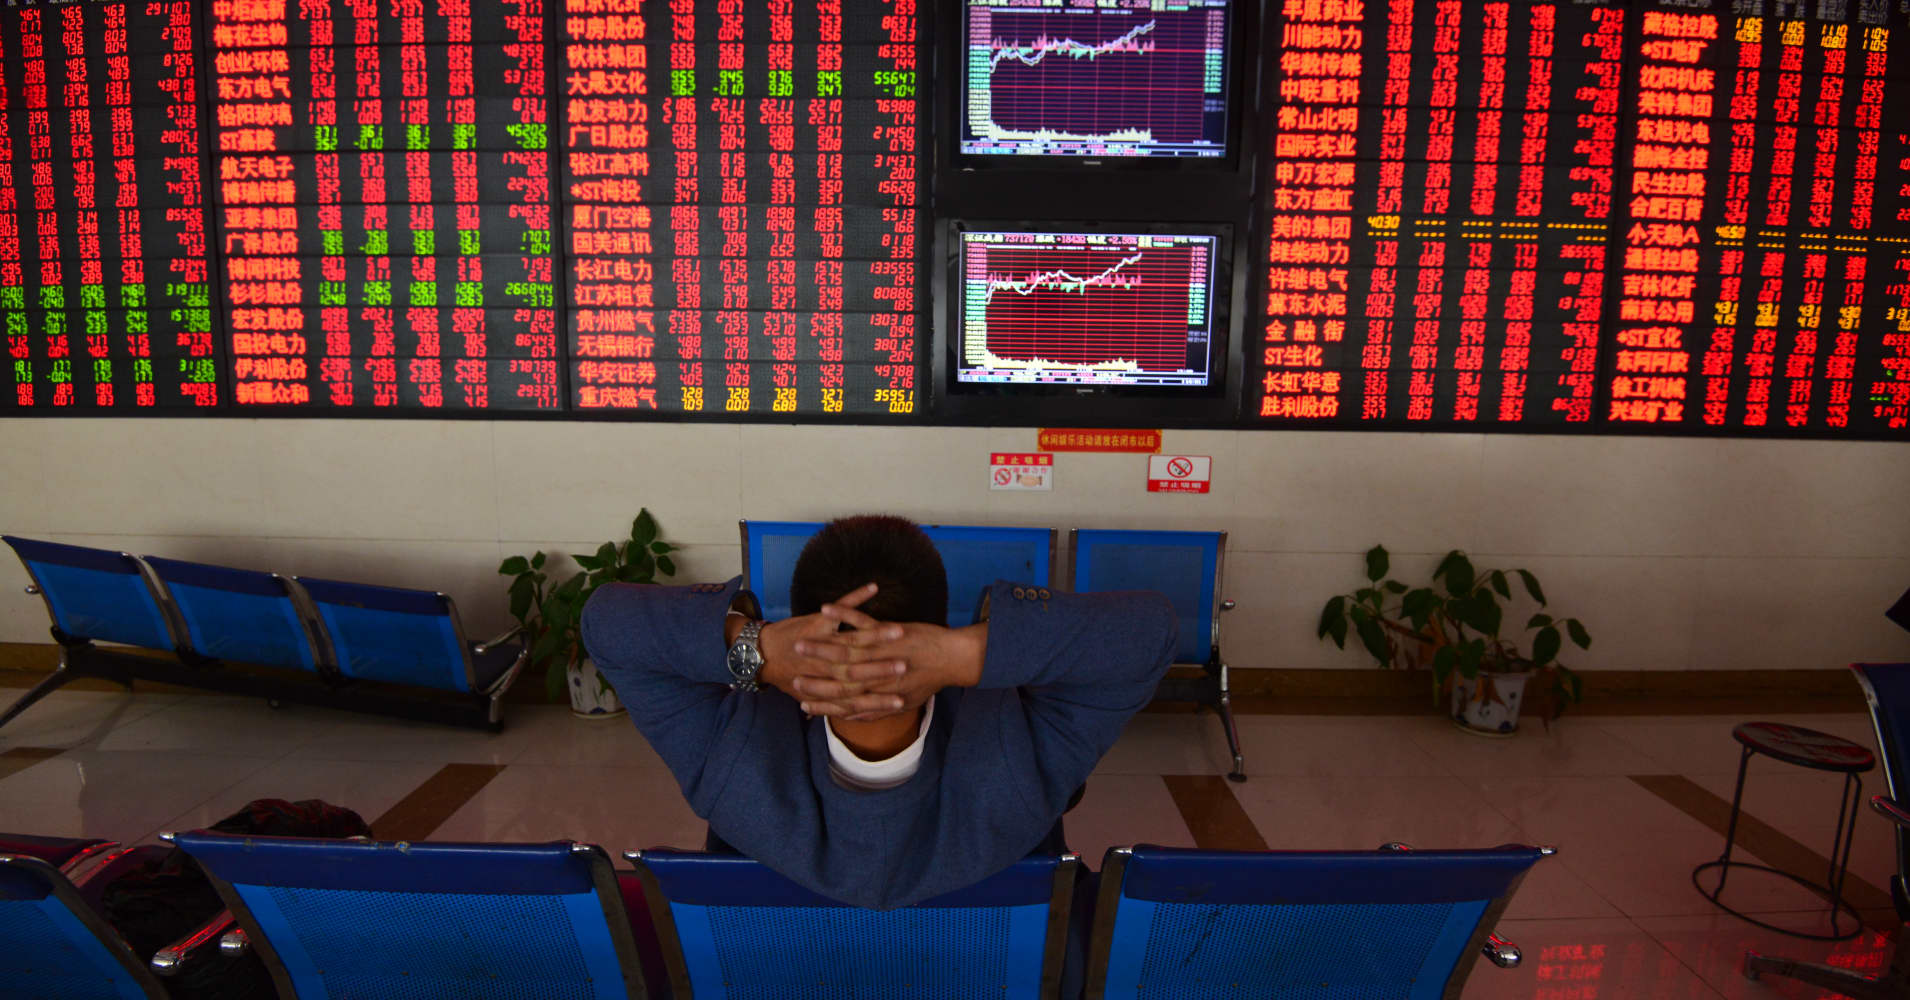 China stocks surge more than 4 percent, extending Friday's rally